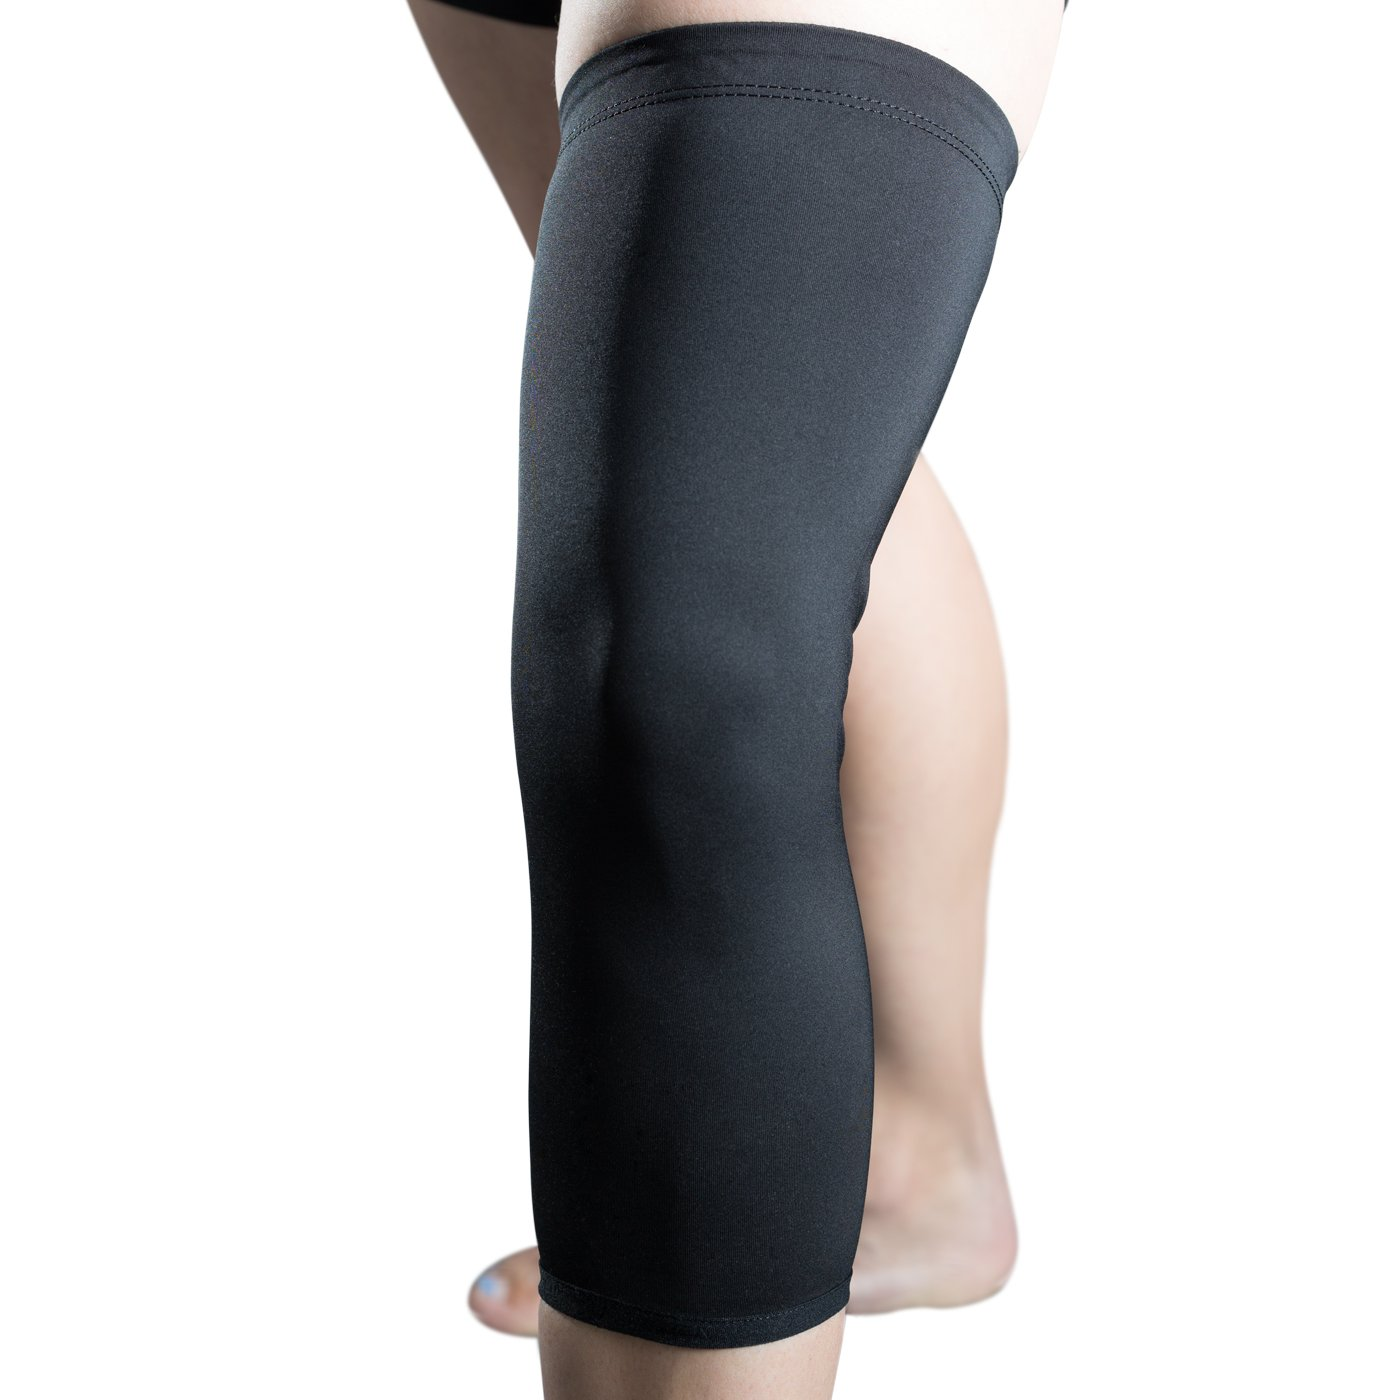 DonJoy Reaction Compression Support: Knee Brace Undersleeve, Large by DonJoy